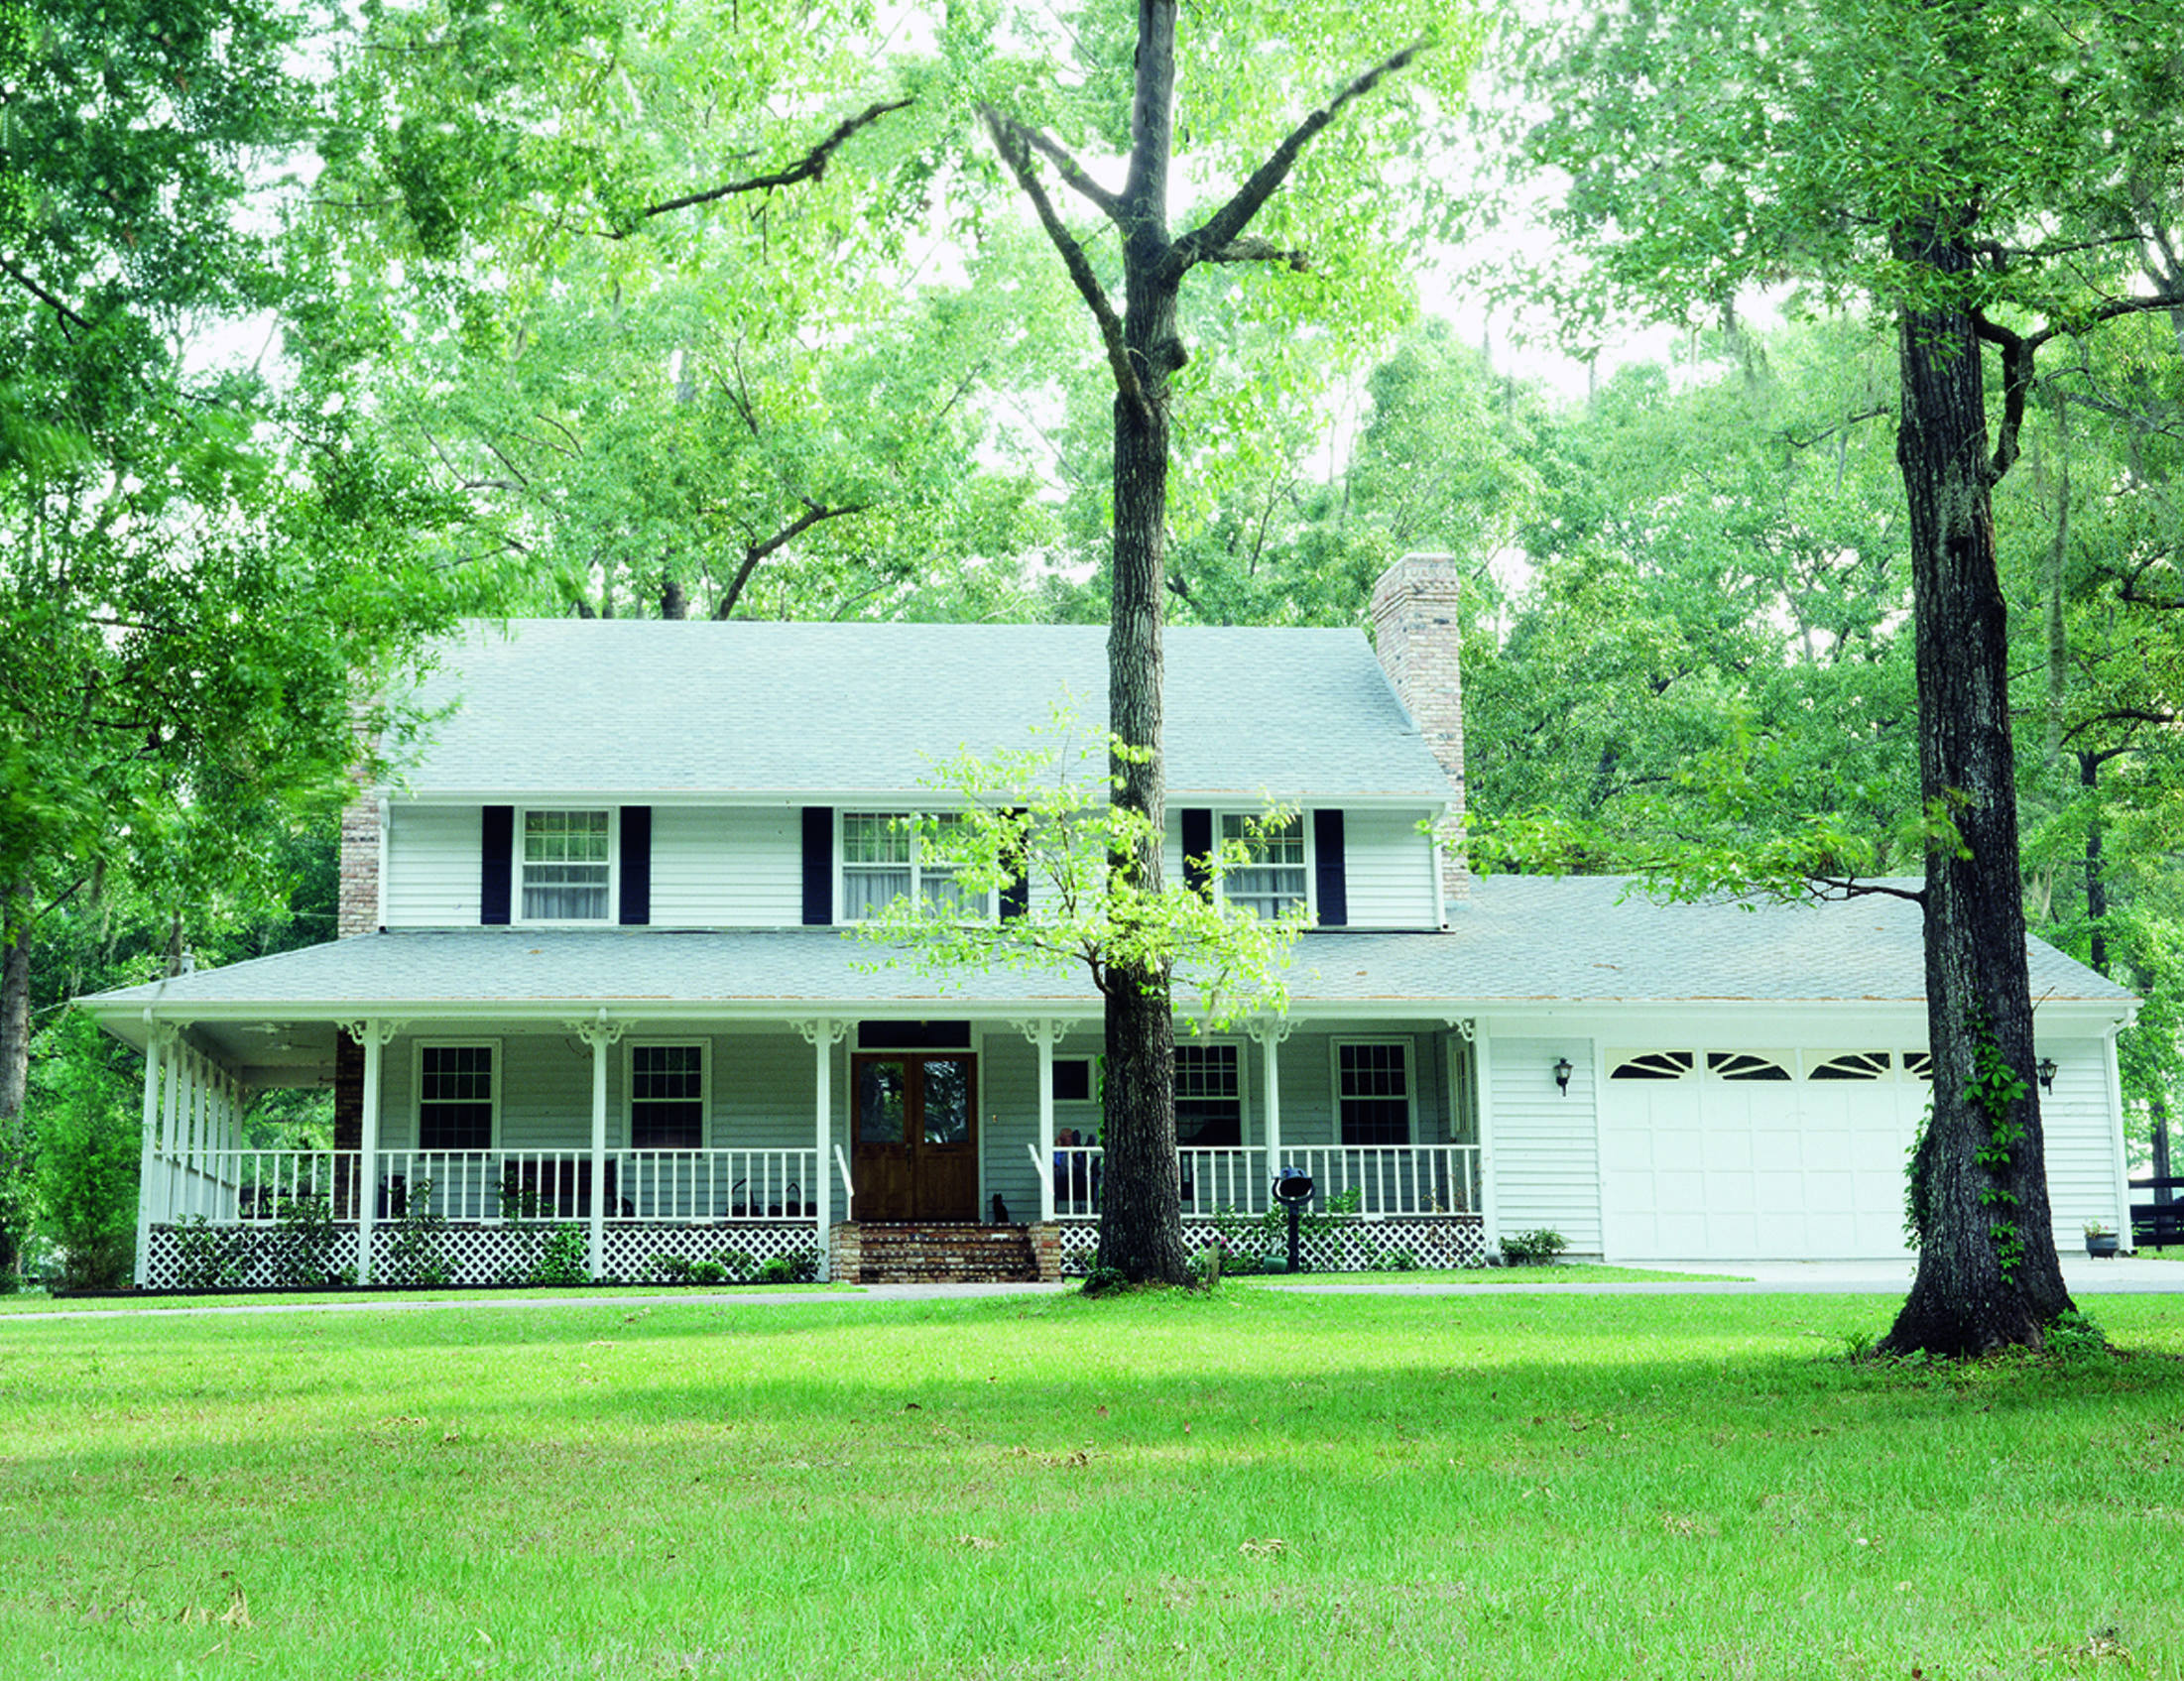 Plan 7300HS: All-American Country Home | Colonial, Porch and Simple ...